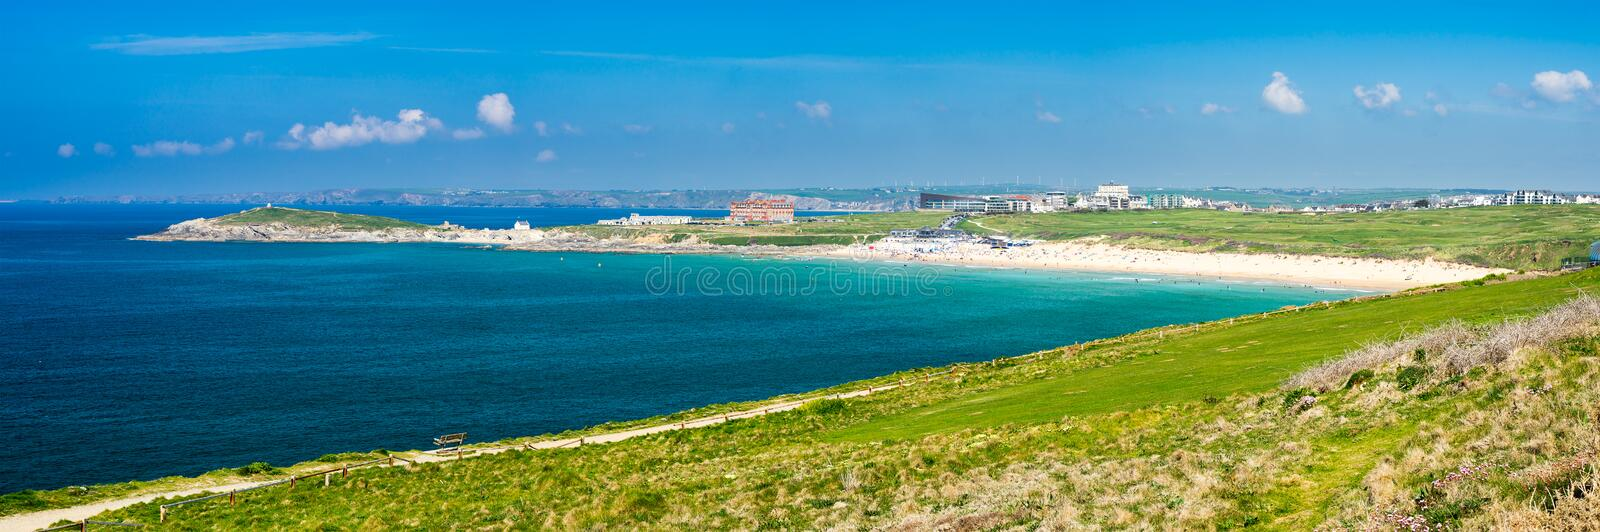 East Pentire Newquay Cornwall England. Panoramic view towards Fistral beach from East Pentire Newquay Cornwall England UK stock photography